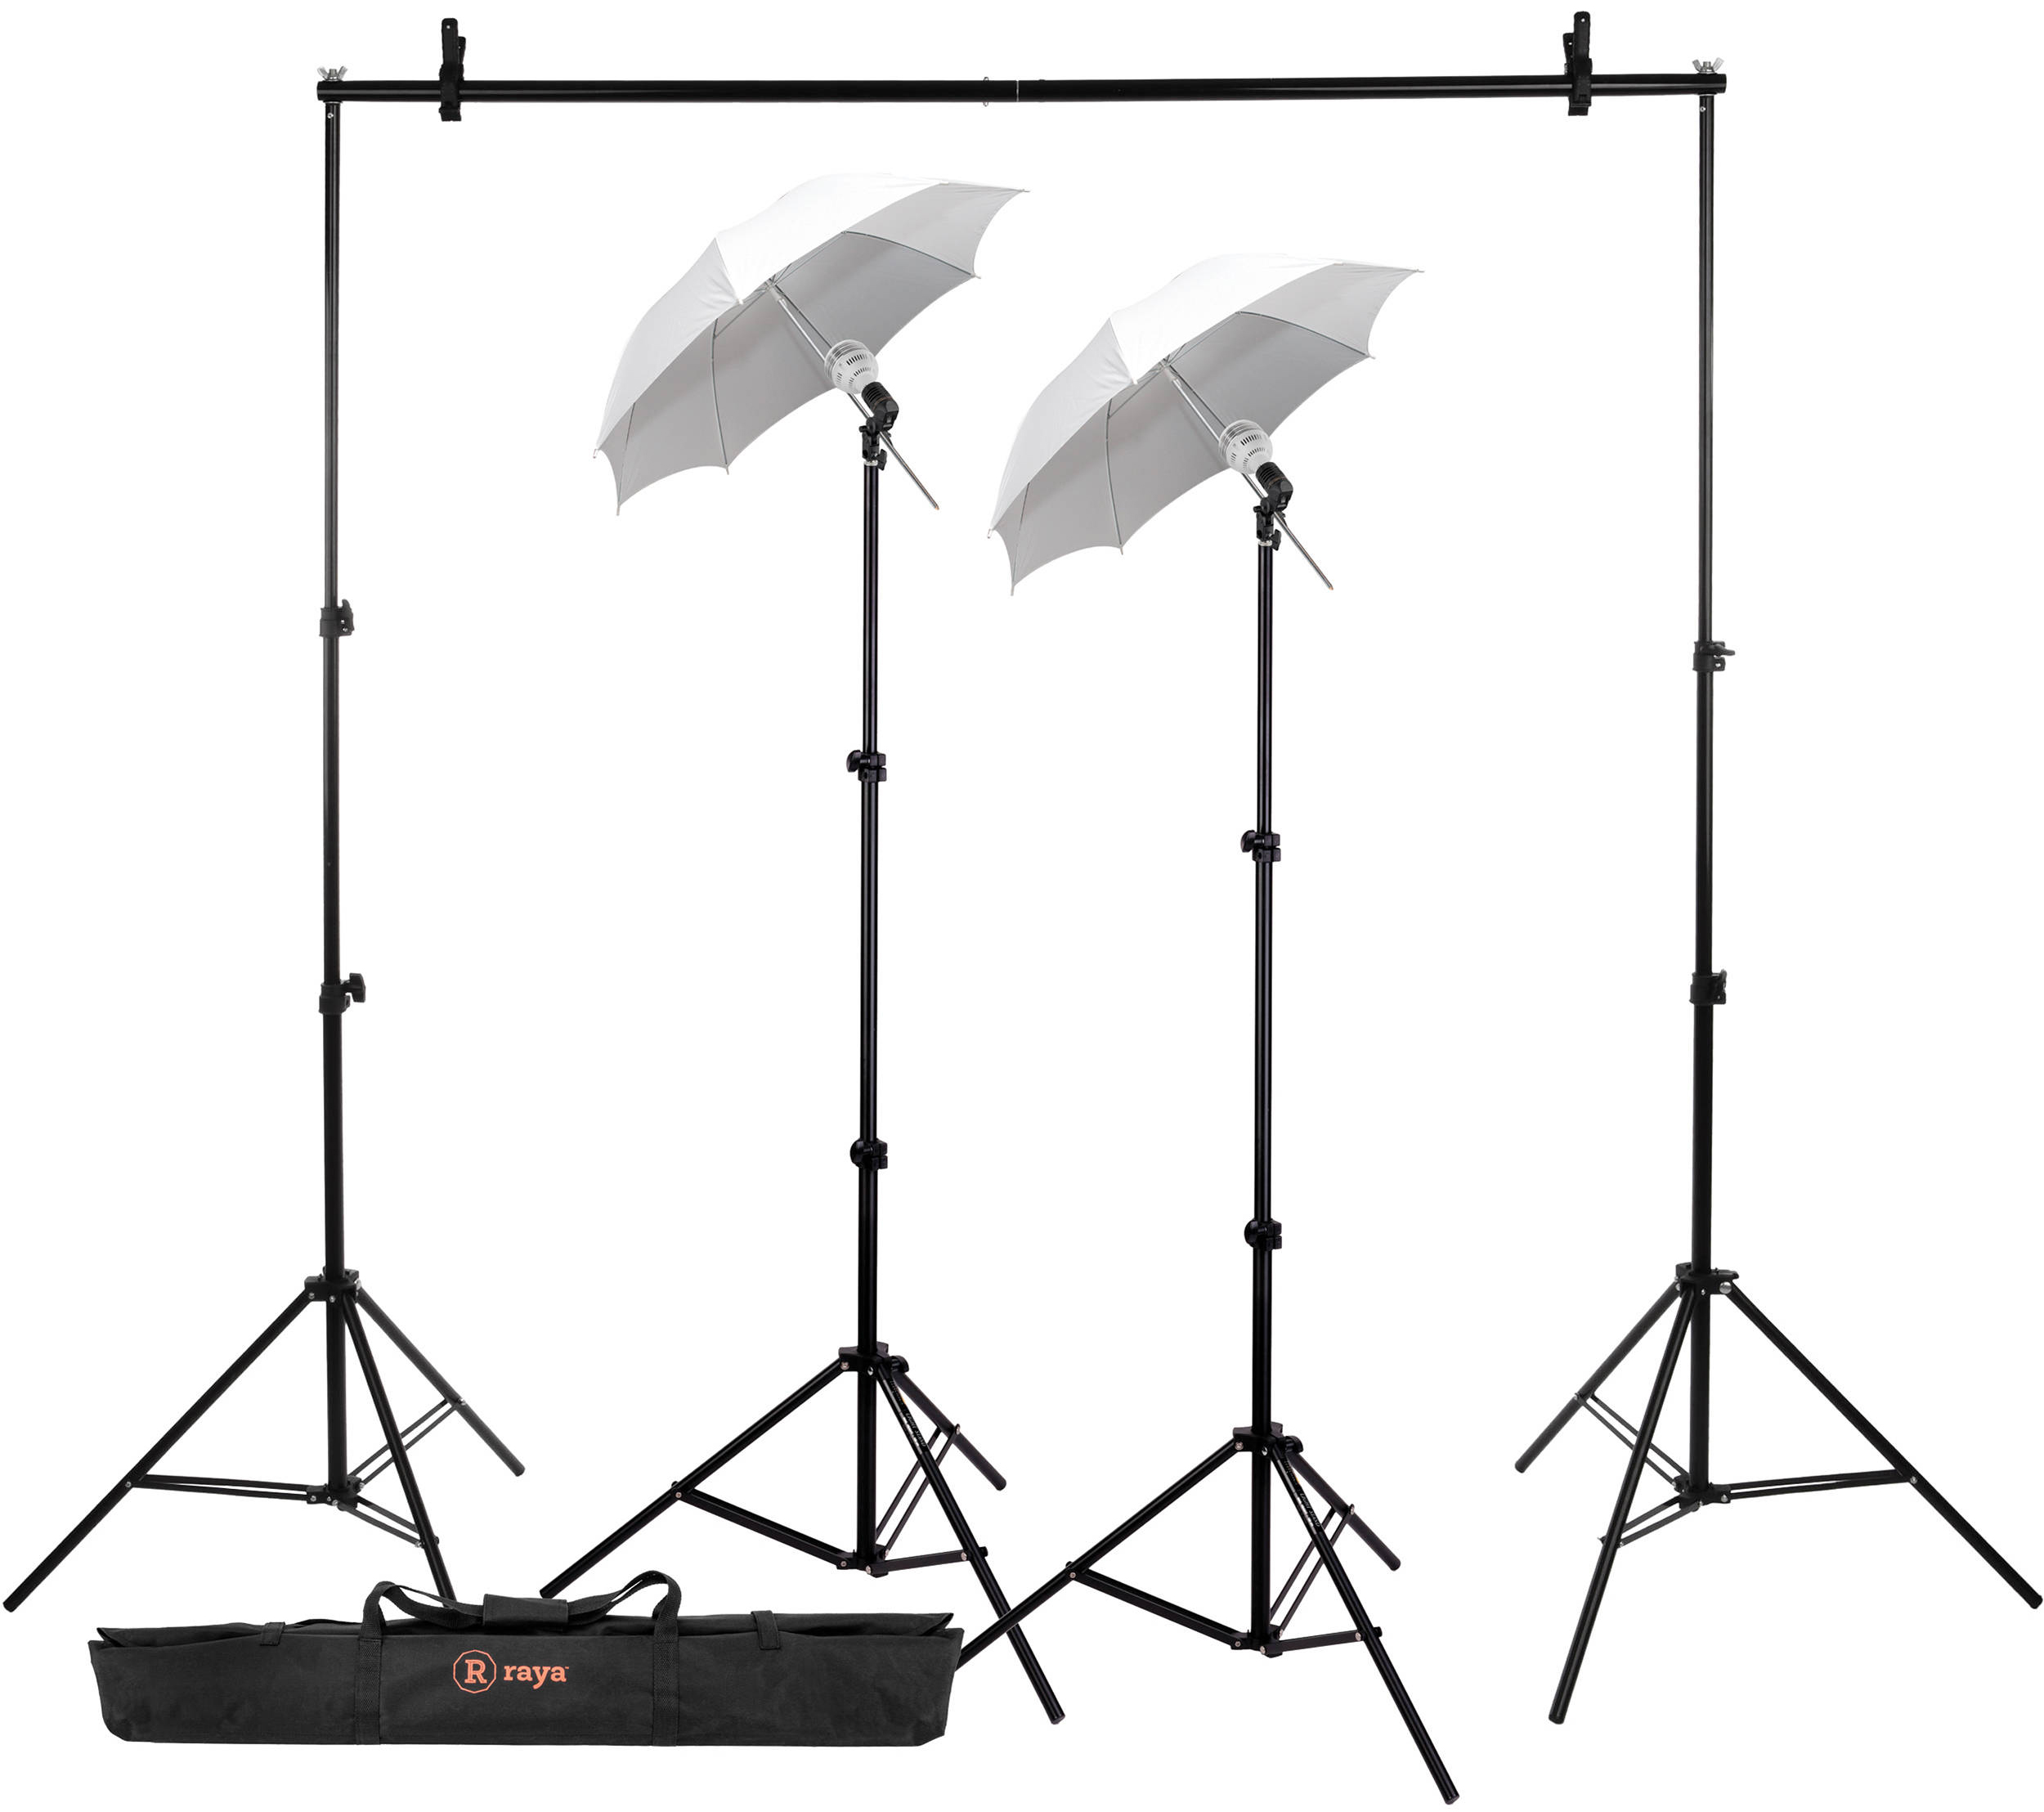 Studio Lighting On A Budget: How To Create Your Own Portrait Light Without Breaking The